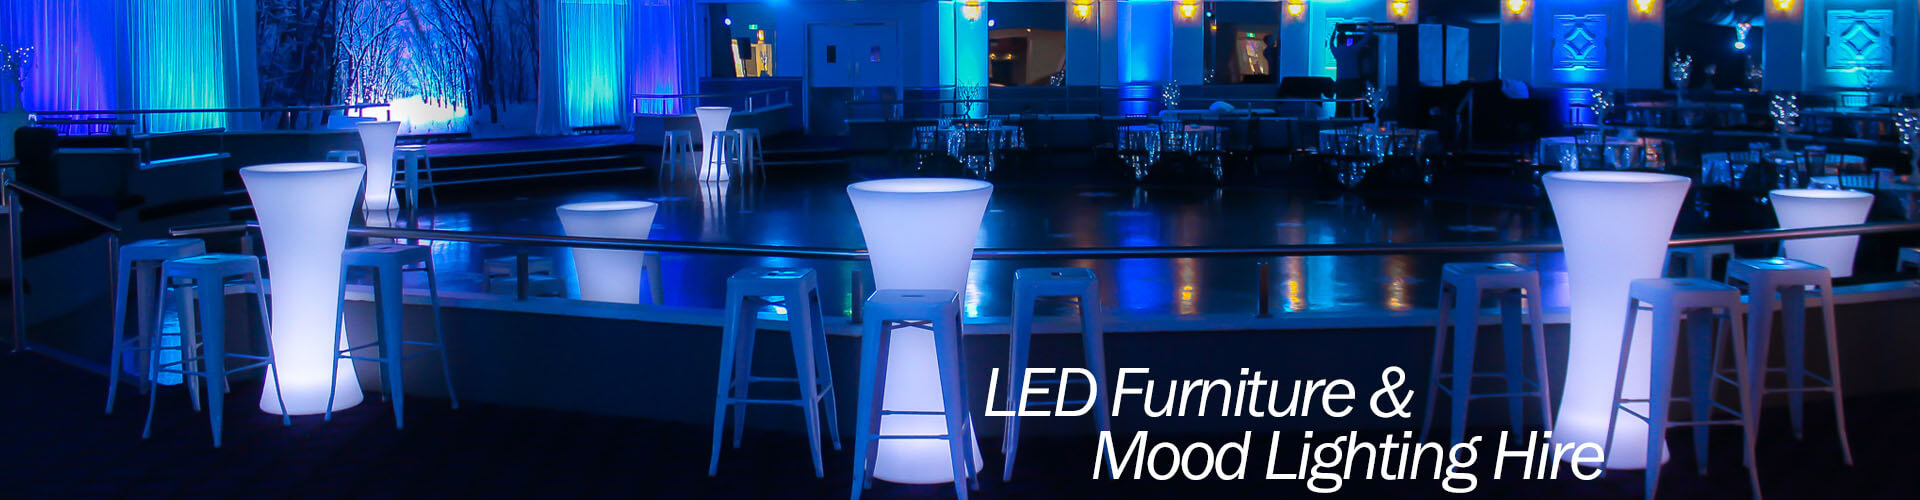 LED furniture and mood lighting hire Melbourne